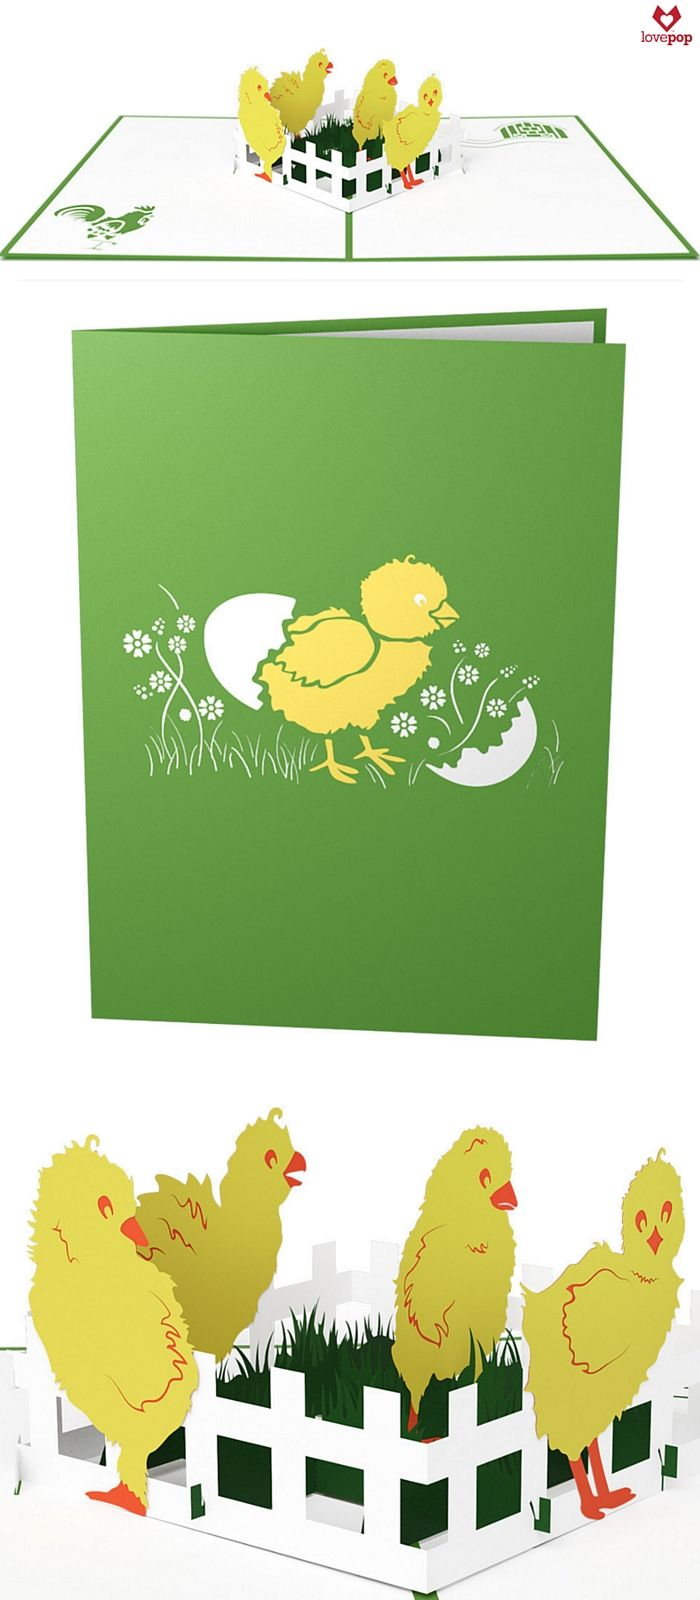 """Gift a card full of """"aww!"""" when you give an Easter pop up card popping with paper art Easter chicks. #HappyEaster #BabyChicks"""